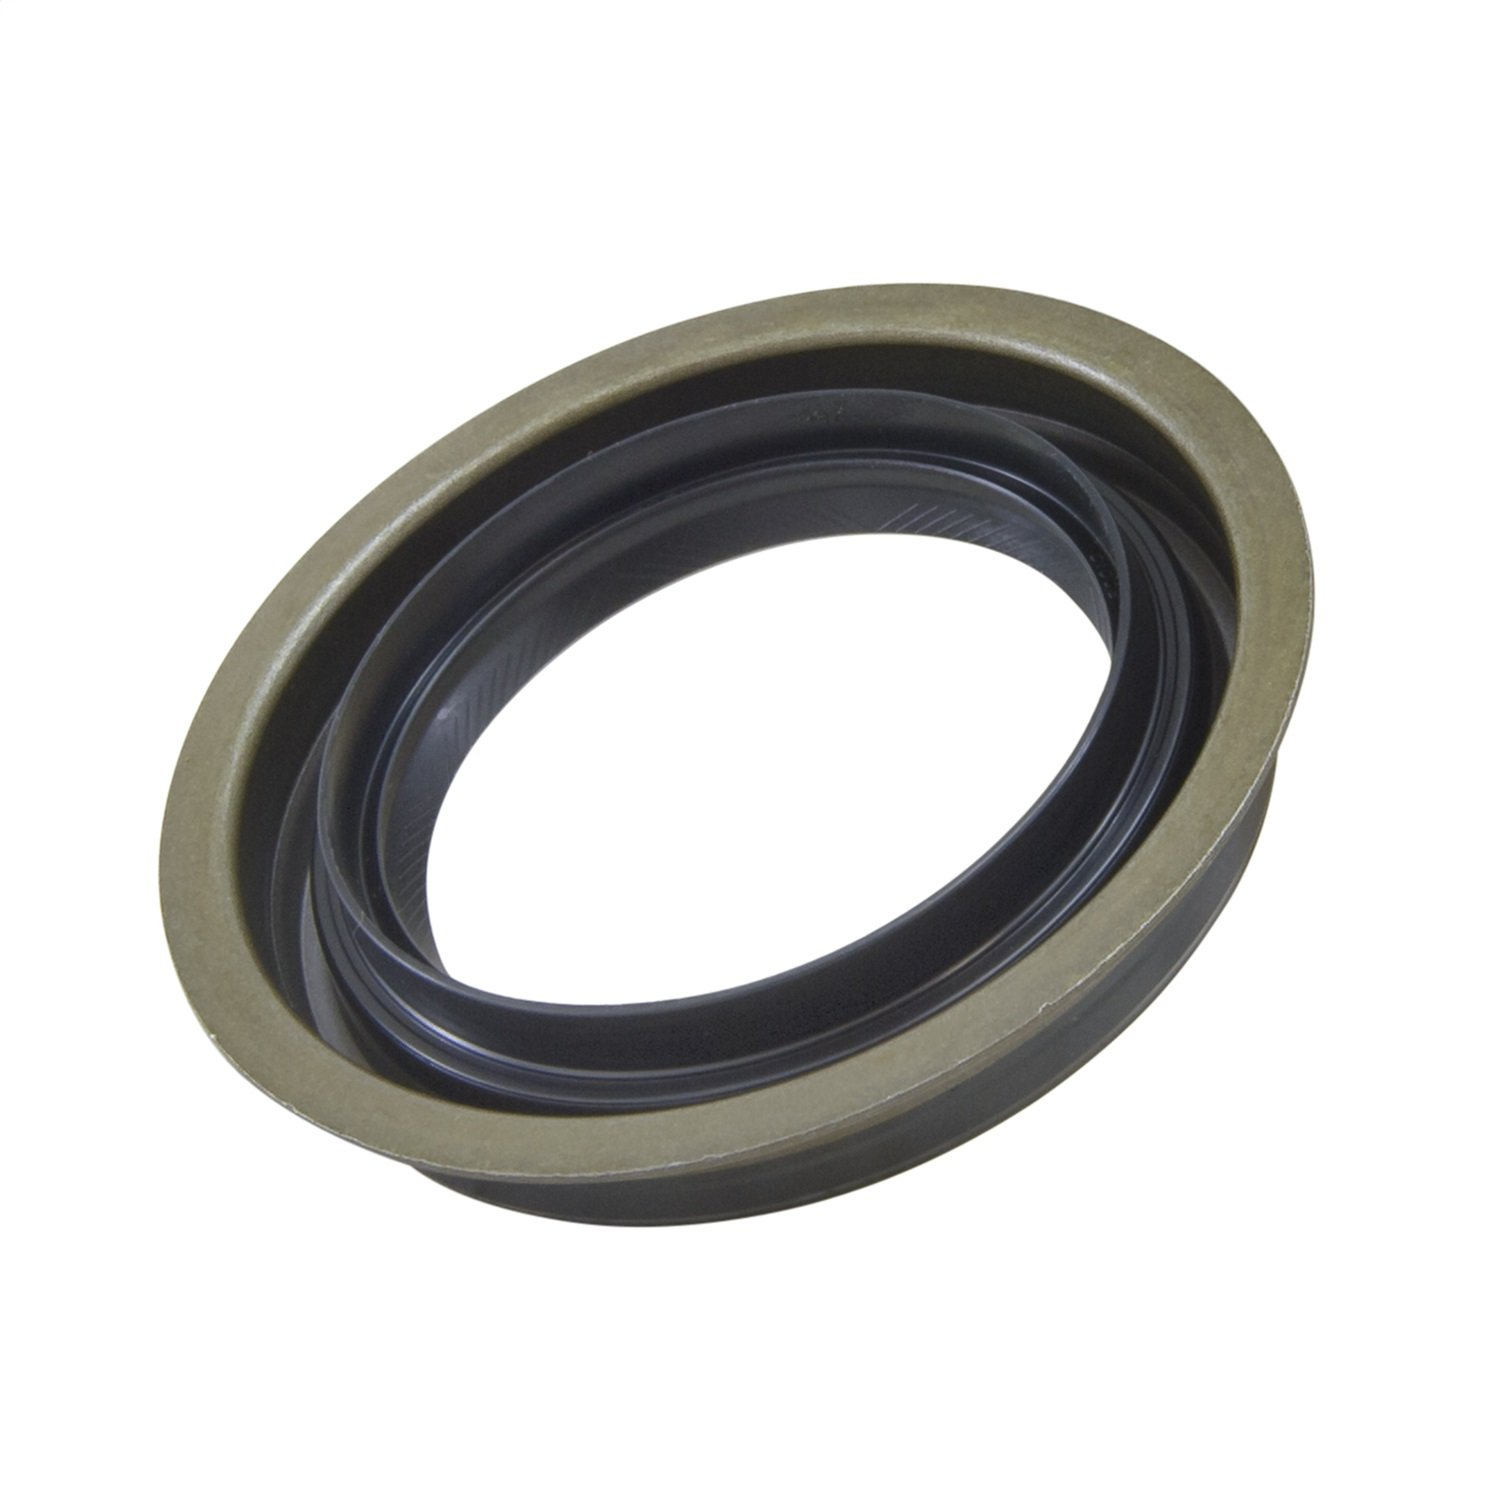 Yukon (YMSC1008) Solid Axle Pinion Seal for Chrysler 9.25'' AAM Differential